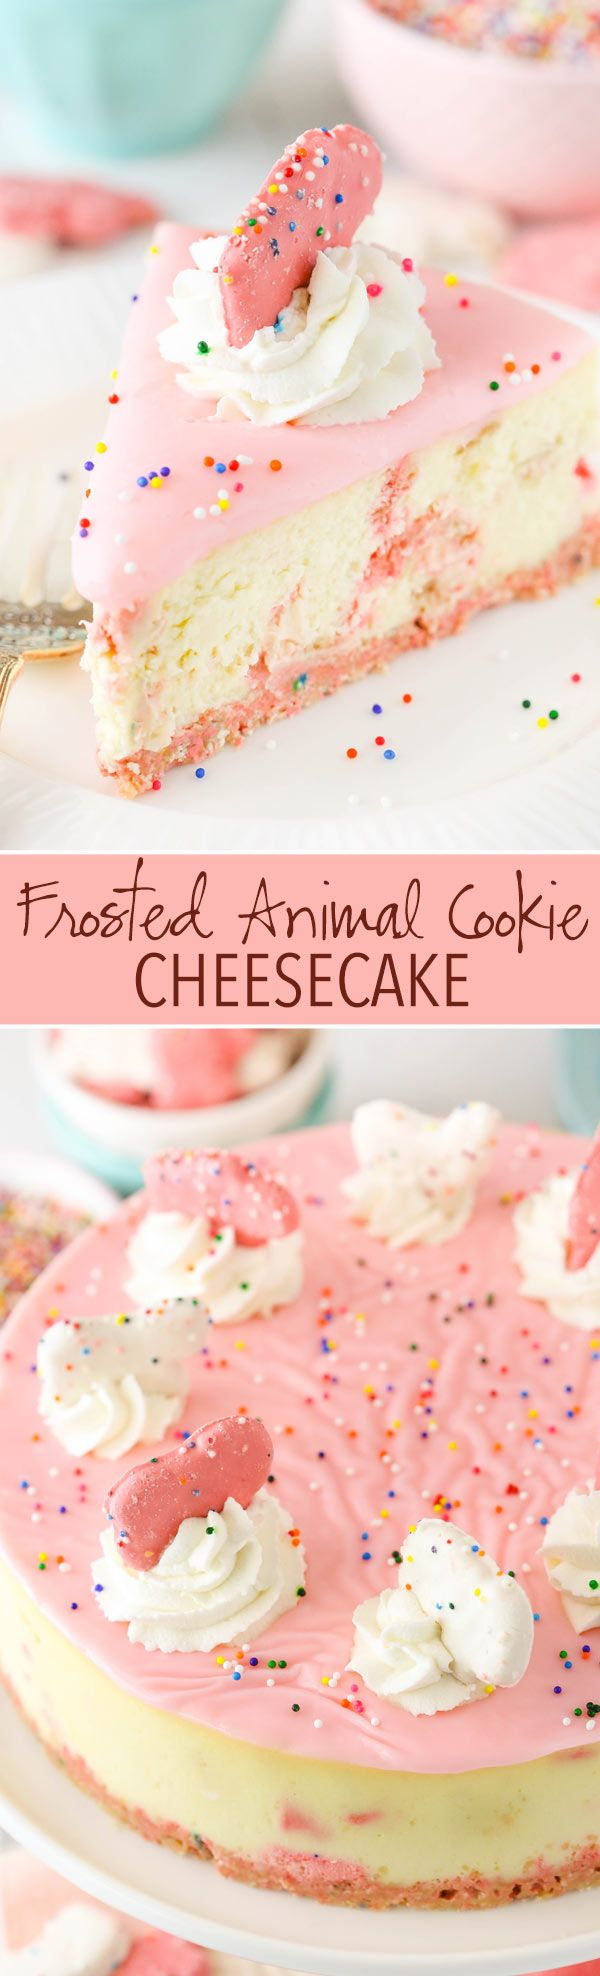 Frosted Animal Cookie Cheesecake Recipe - thick and cream vanilla cheesecake with frosted animal cookies in the crust and the filling! So good!